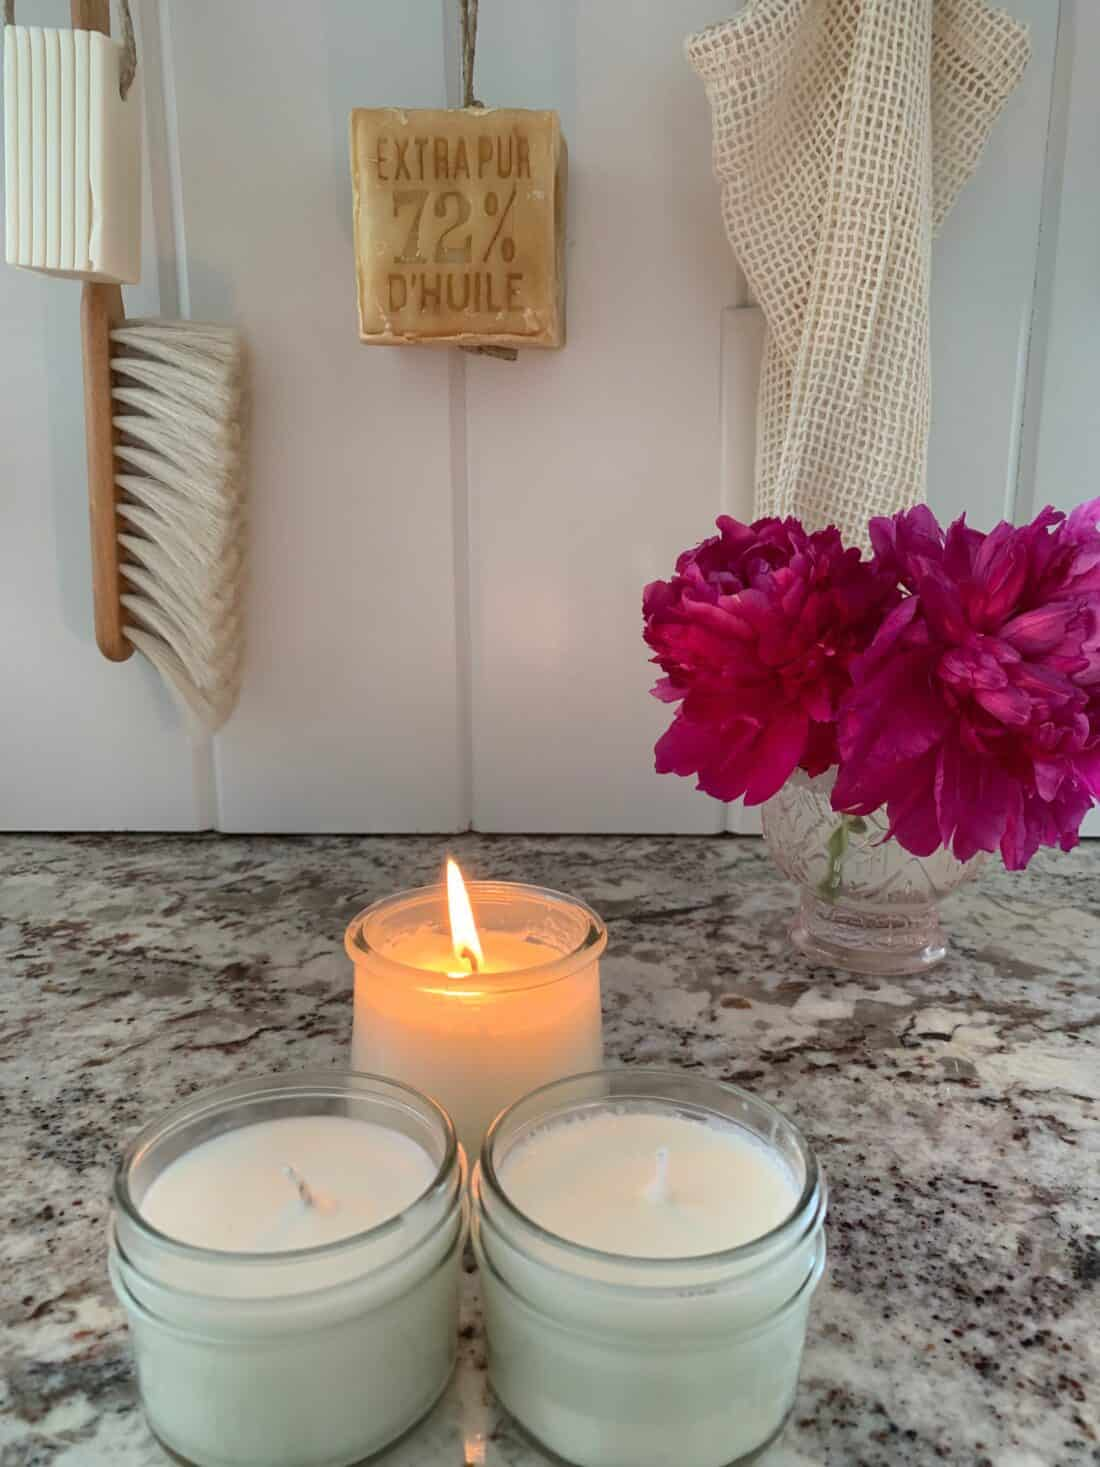 steps for making essential oil candles at home